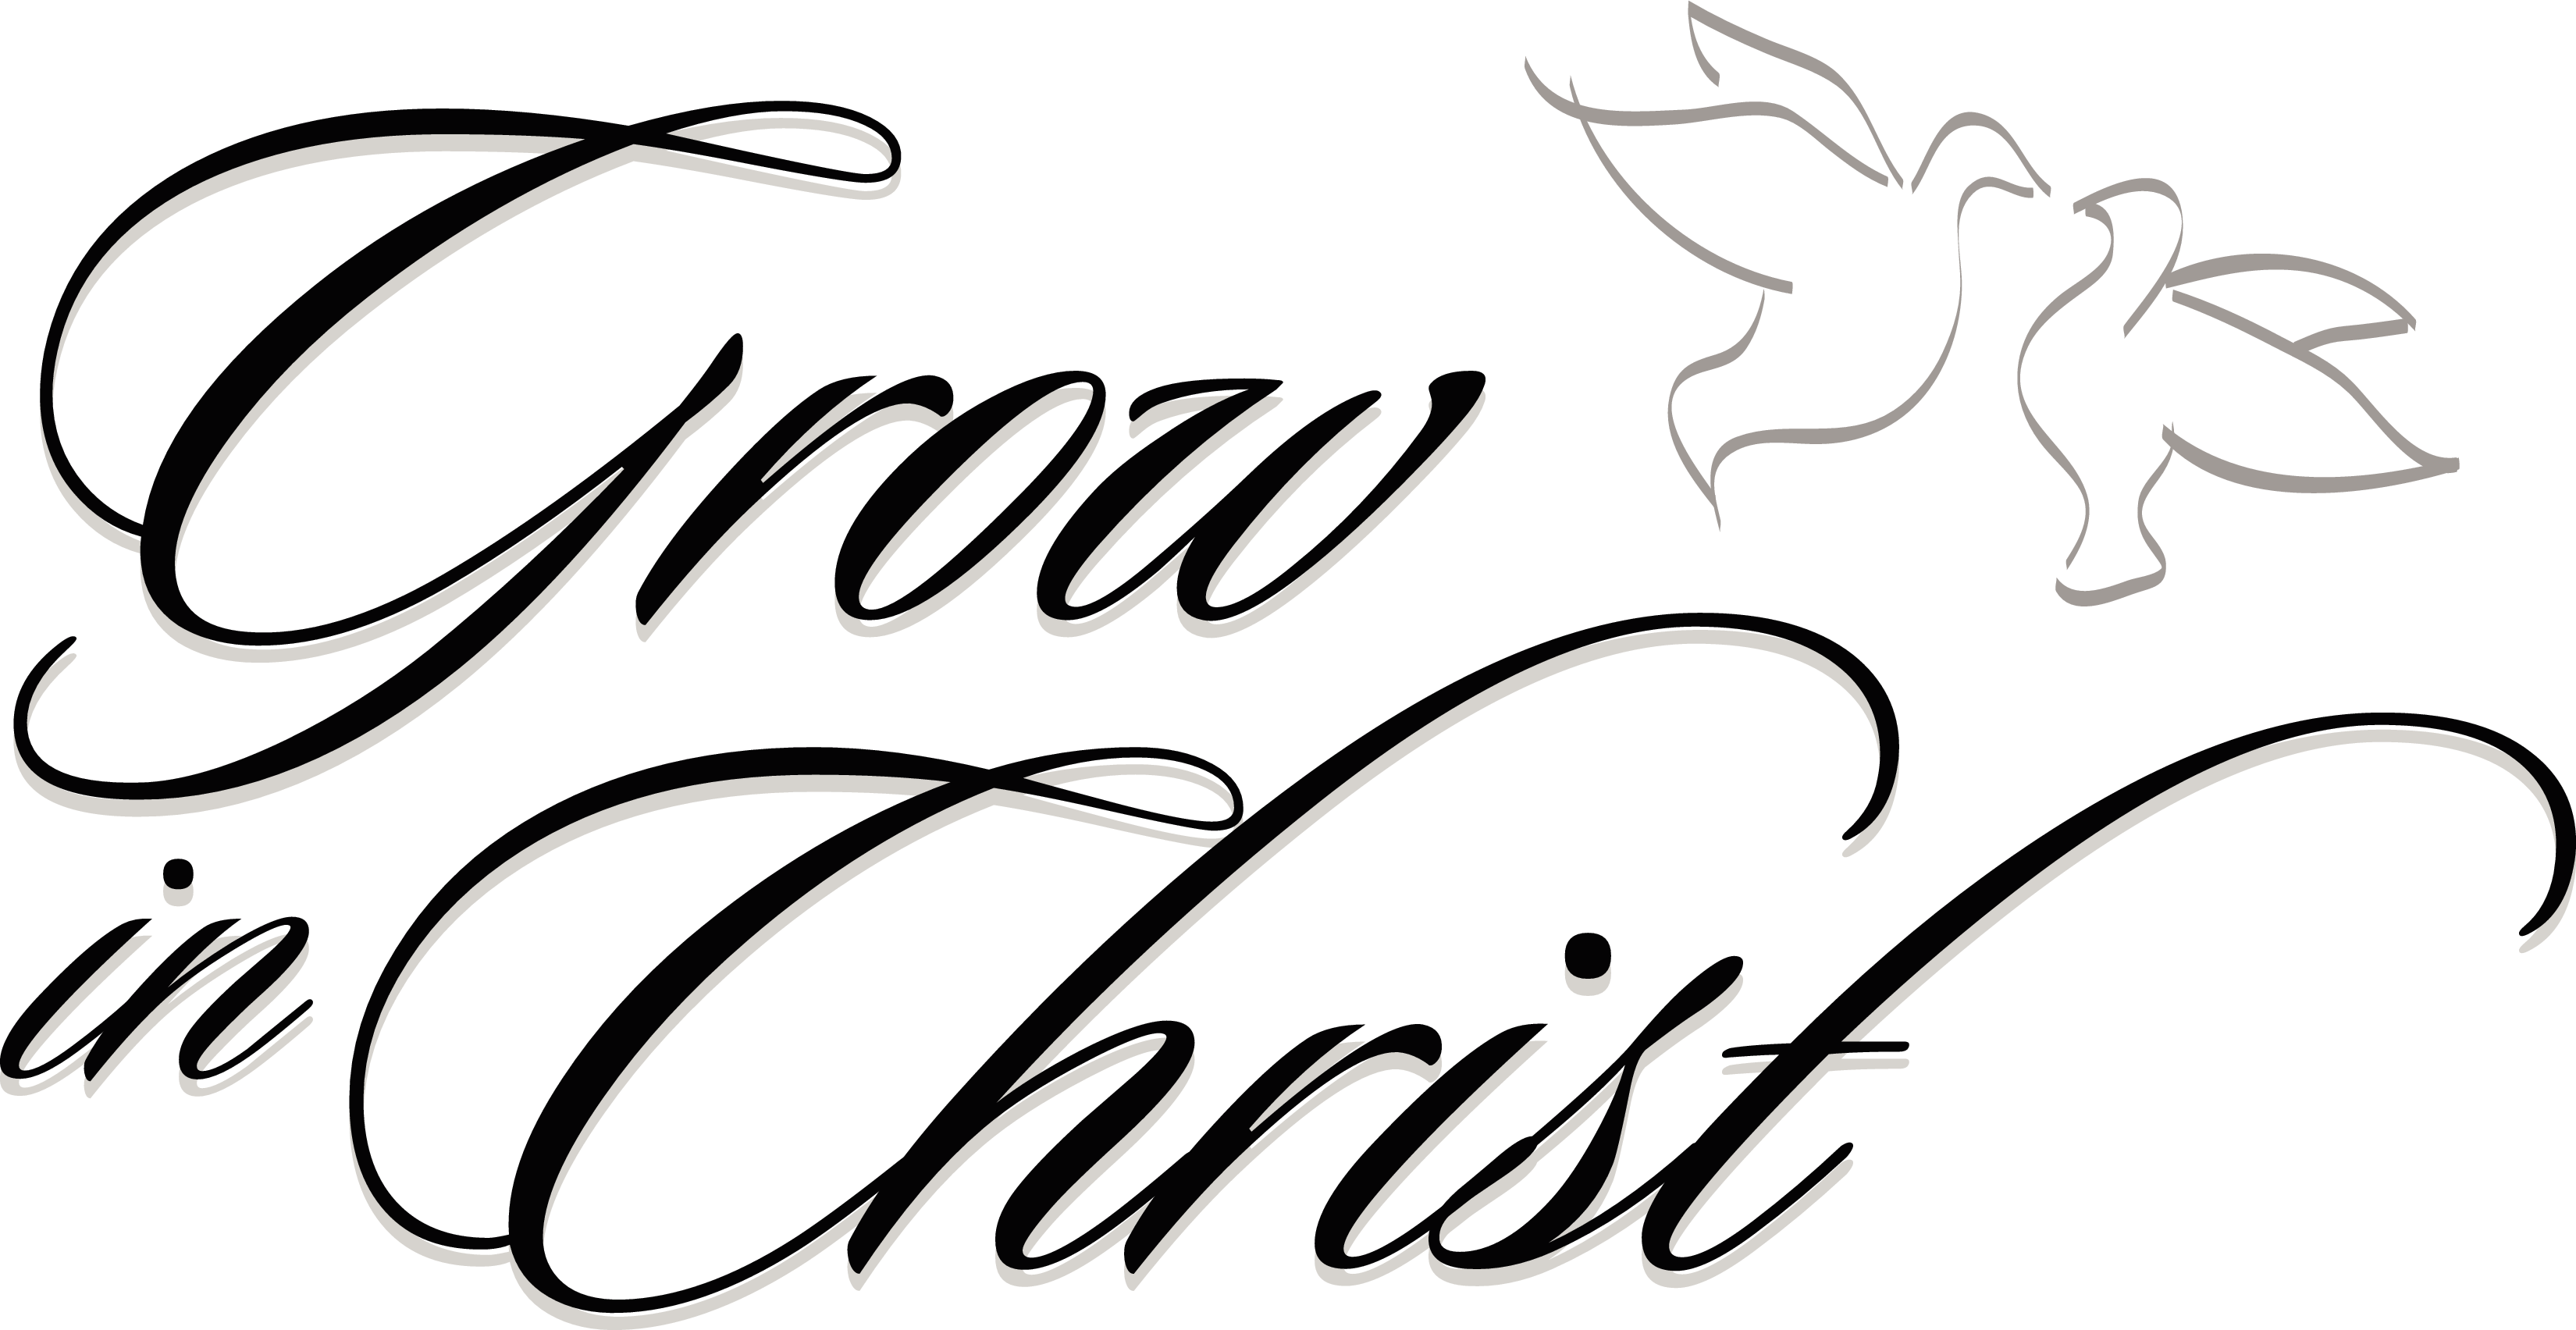 christian clipart black